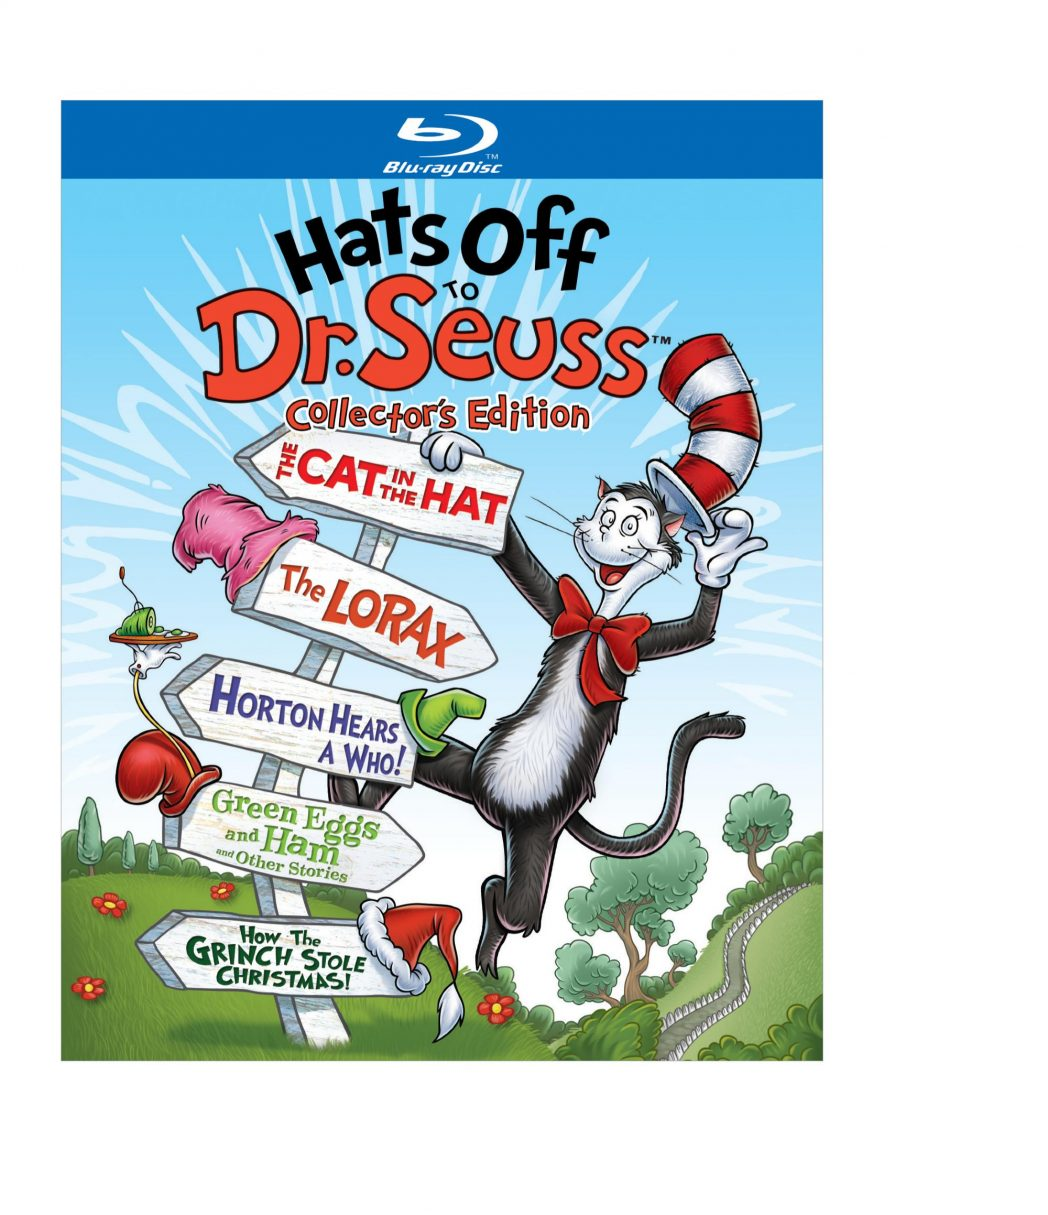 Hats Off To Dr. Seuss Collector's Edition